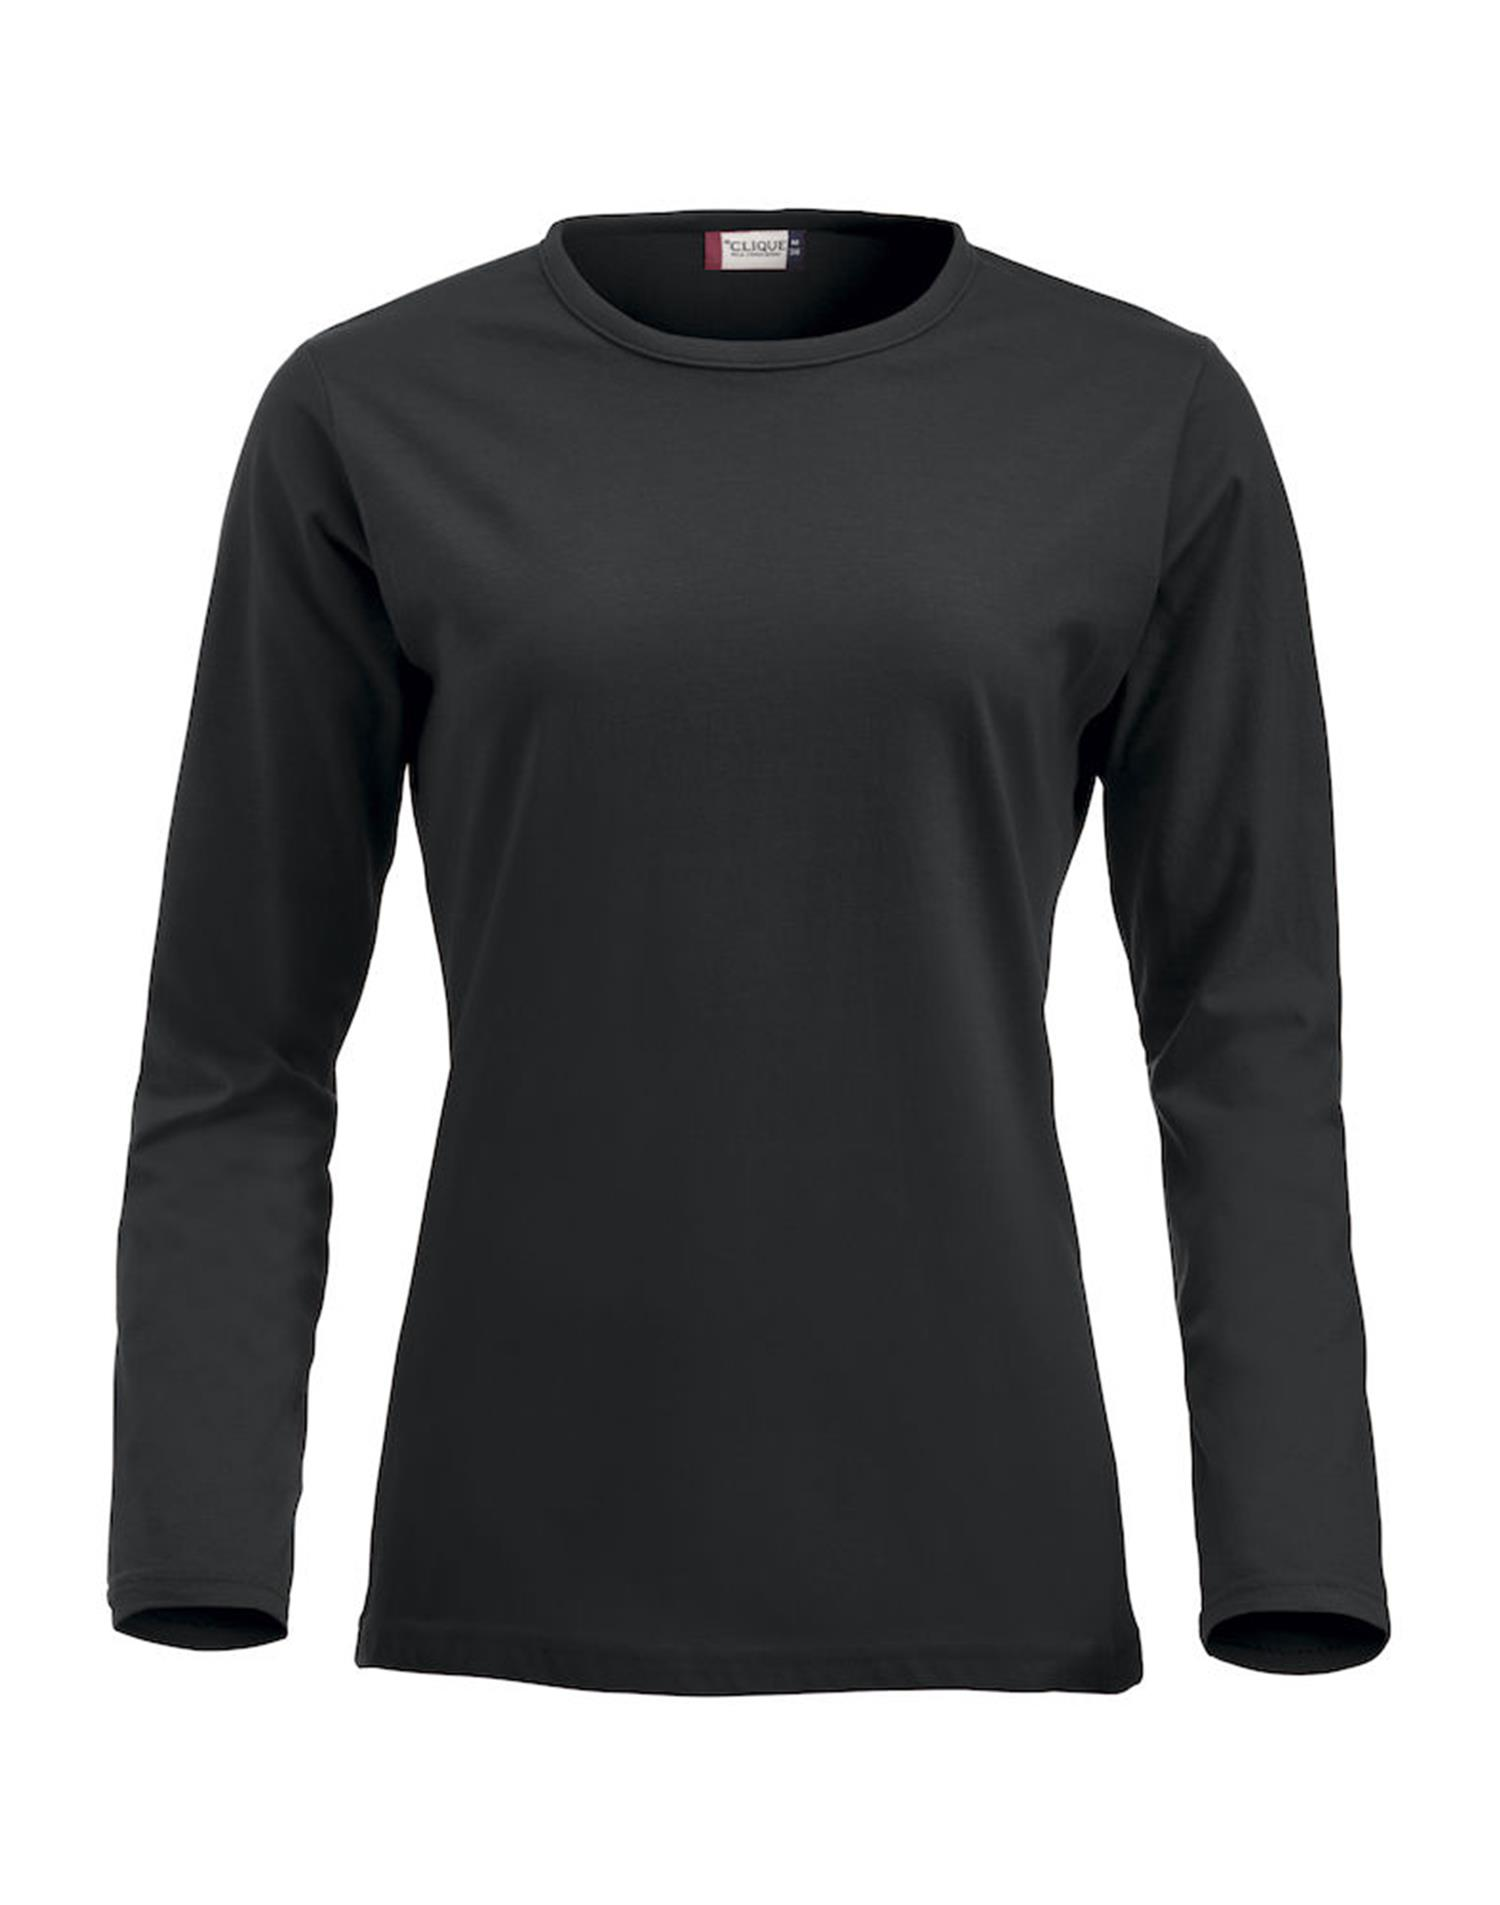 NewWave Fashion-T Ladies Long Sleeve (S - NERO)